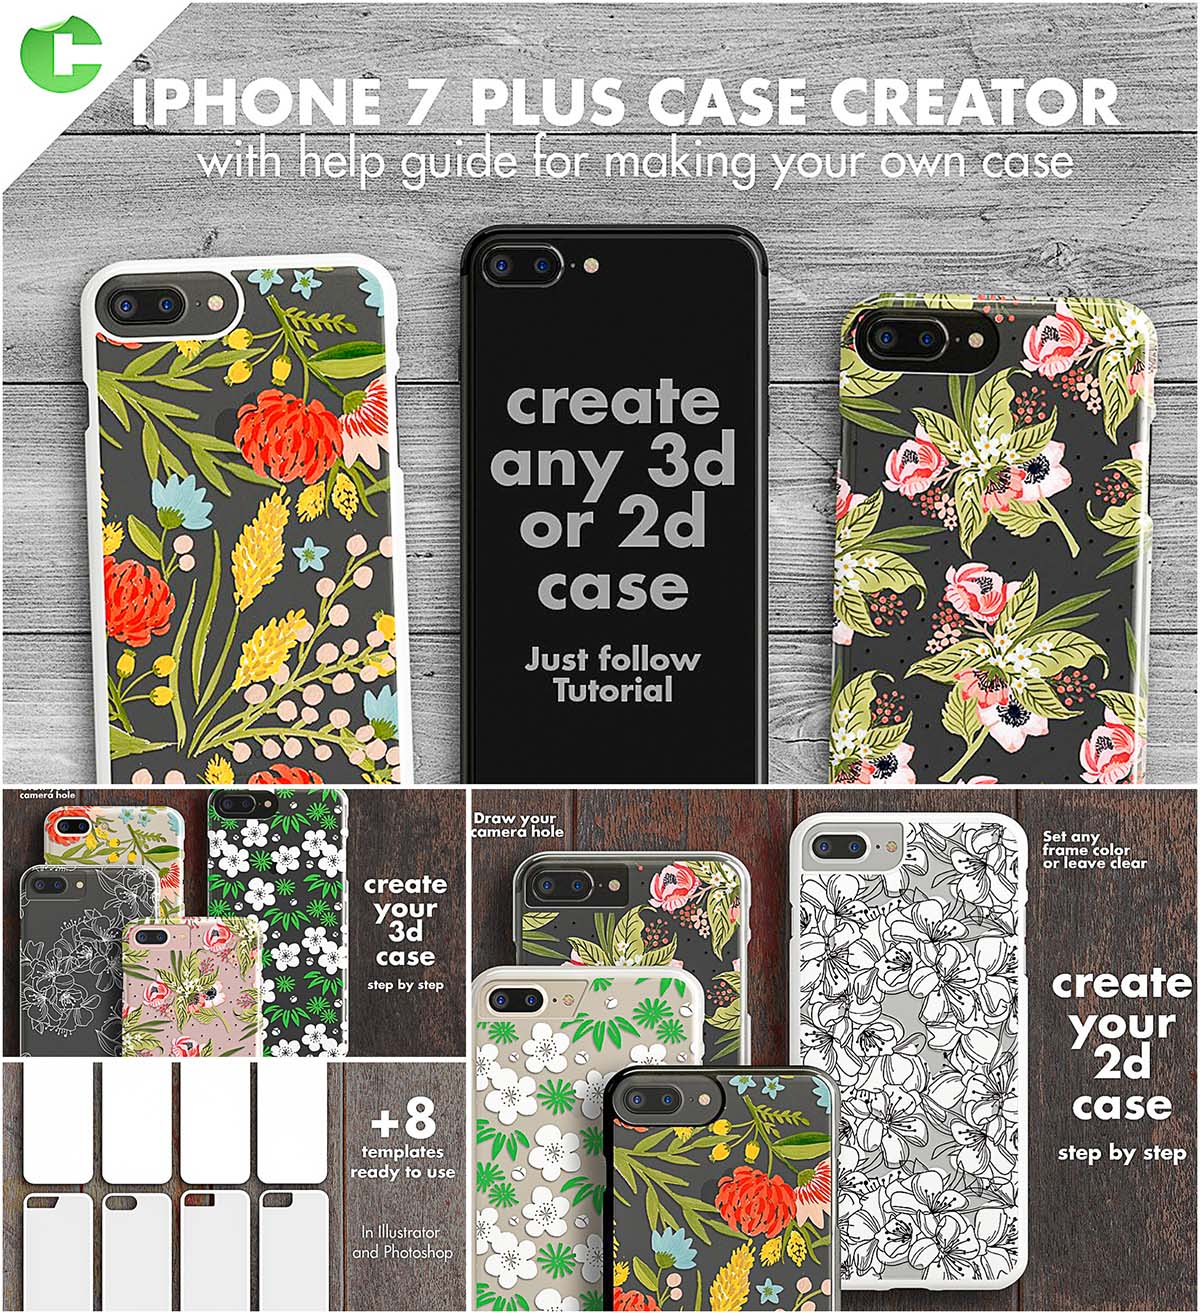 Iphone 7 case creator